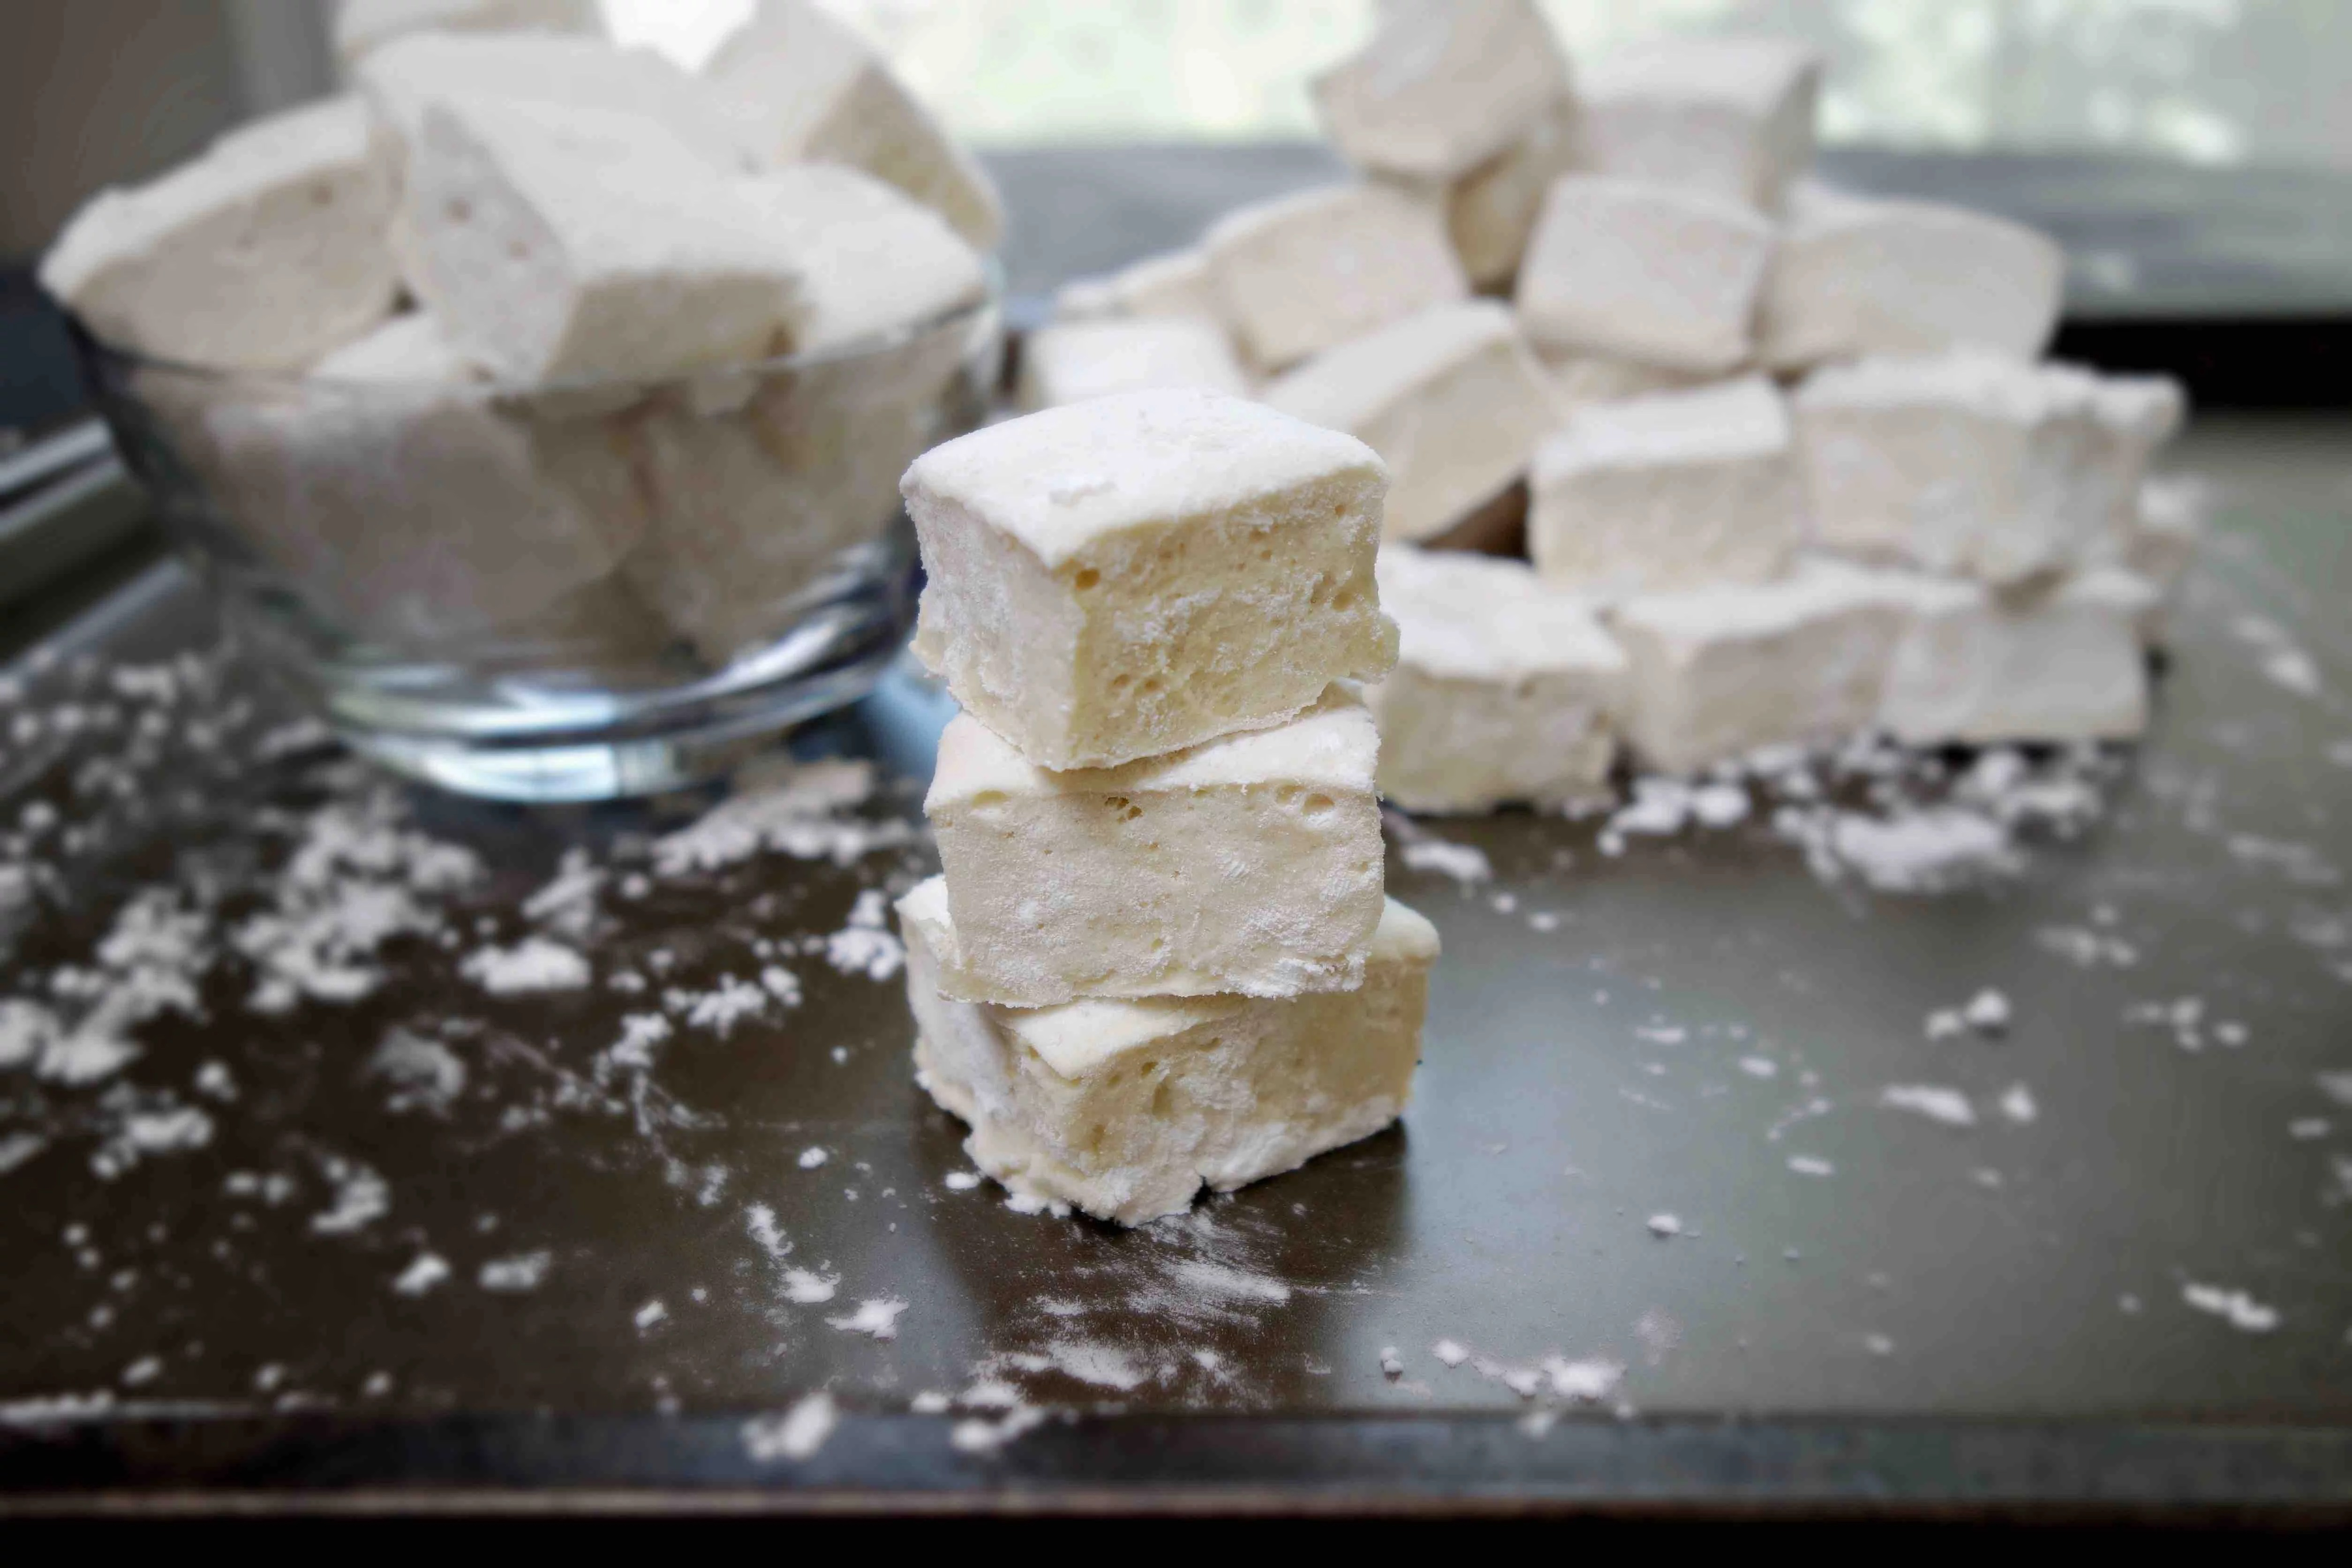 stacked homemade paleo marshmallows with more marshmallows in the background